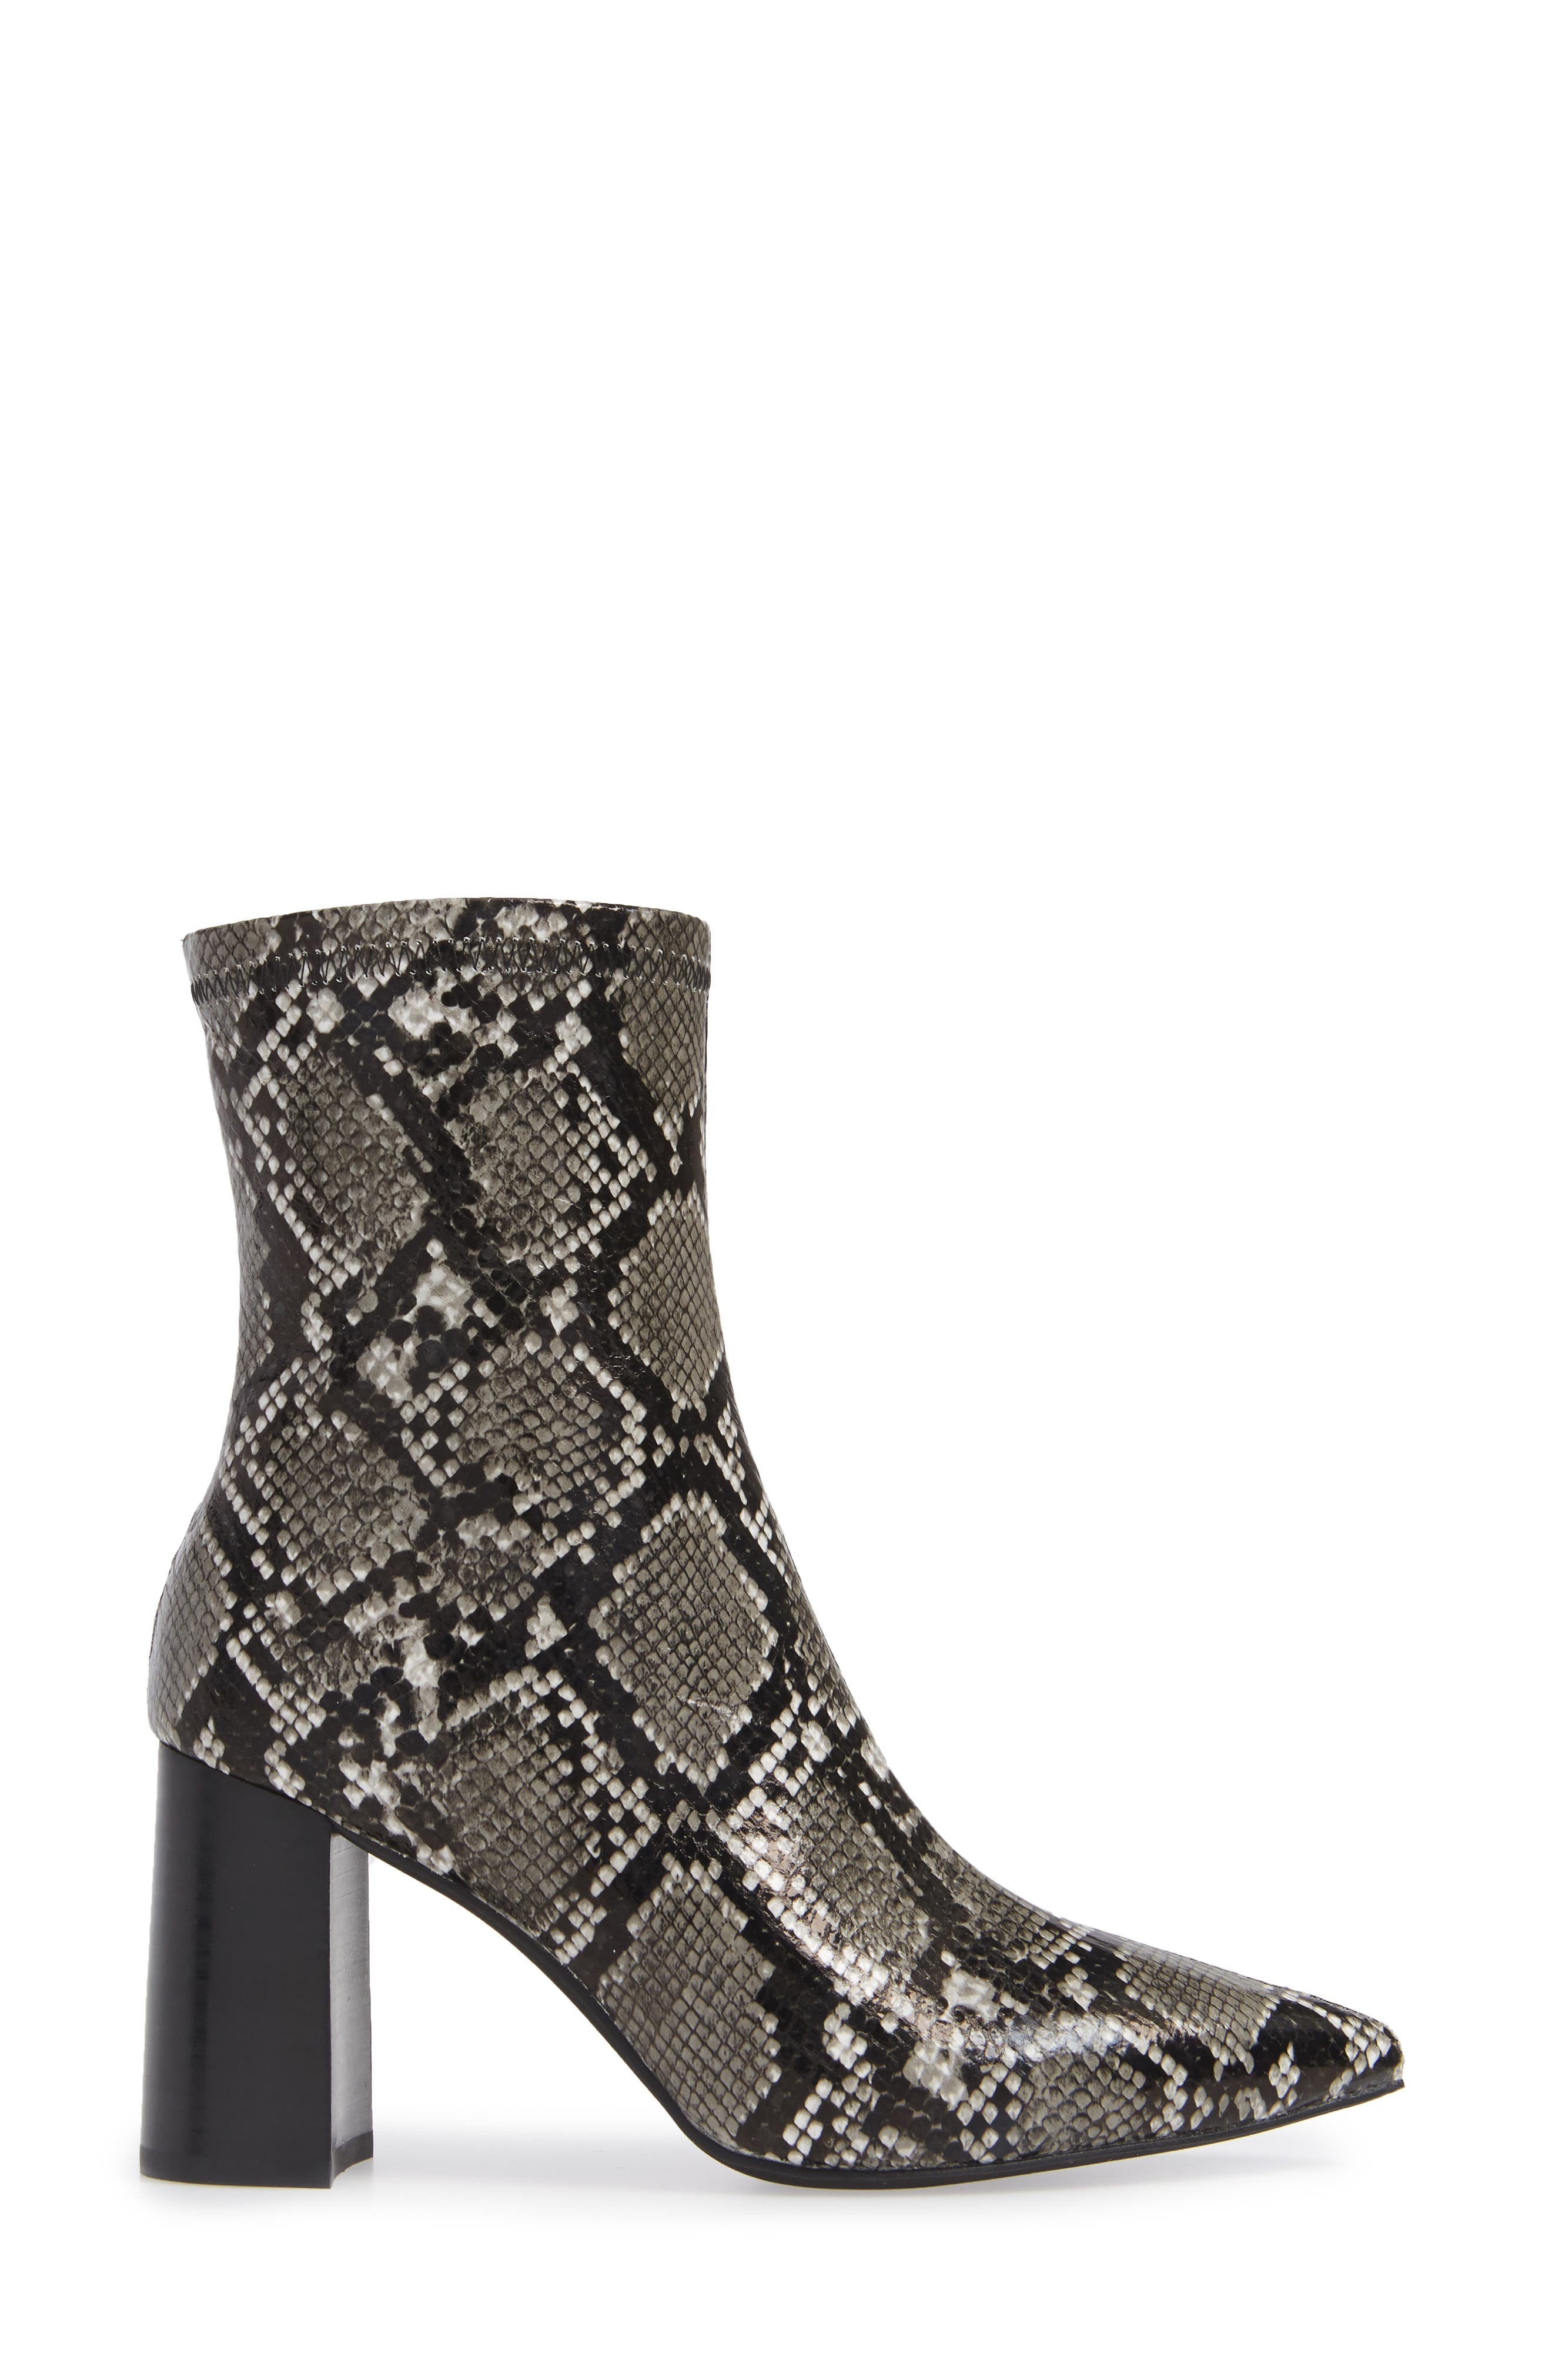 Coma 3 Block Heel Bootie,                             Alternate thumbnail 3, color,                             GREY/ BLACK SNAKE PRINT